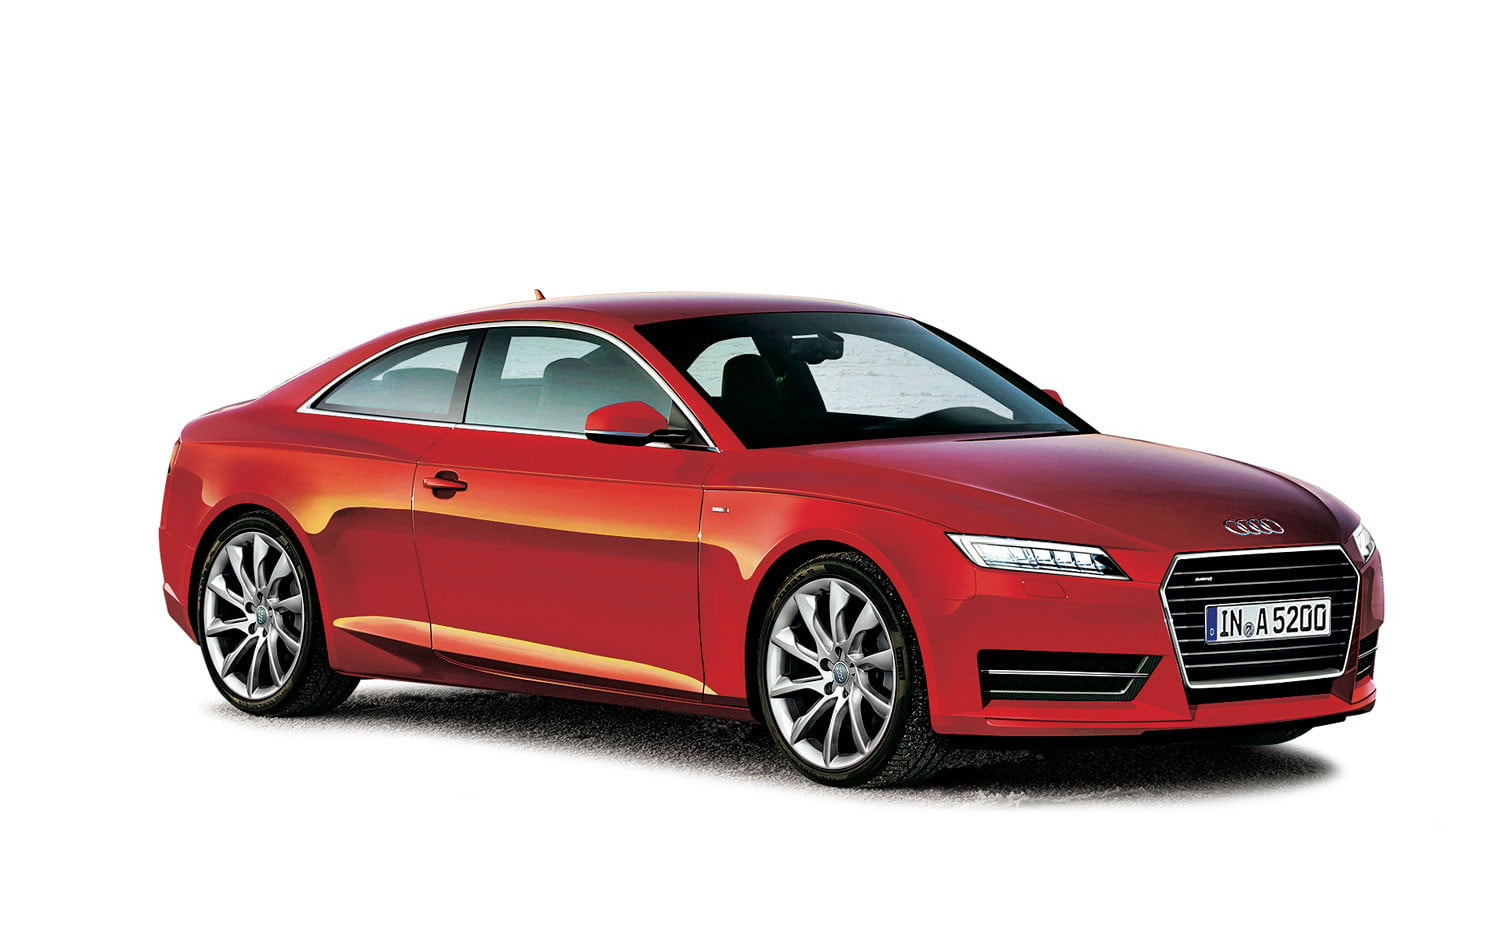 New Lightweight Audi A5 Planned For 2016